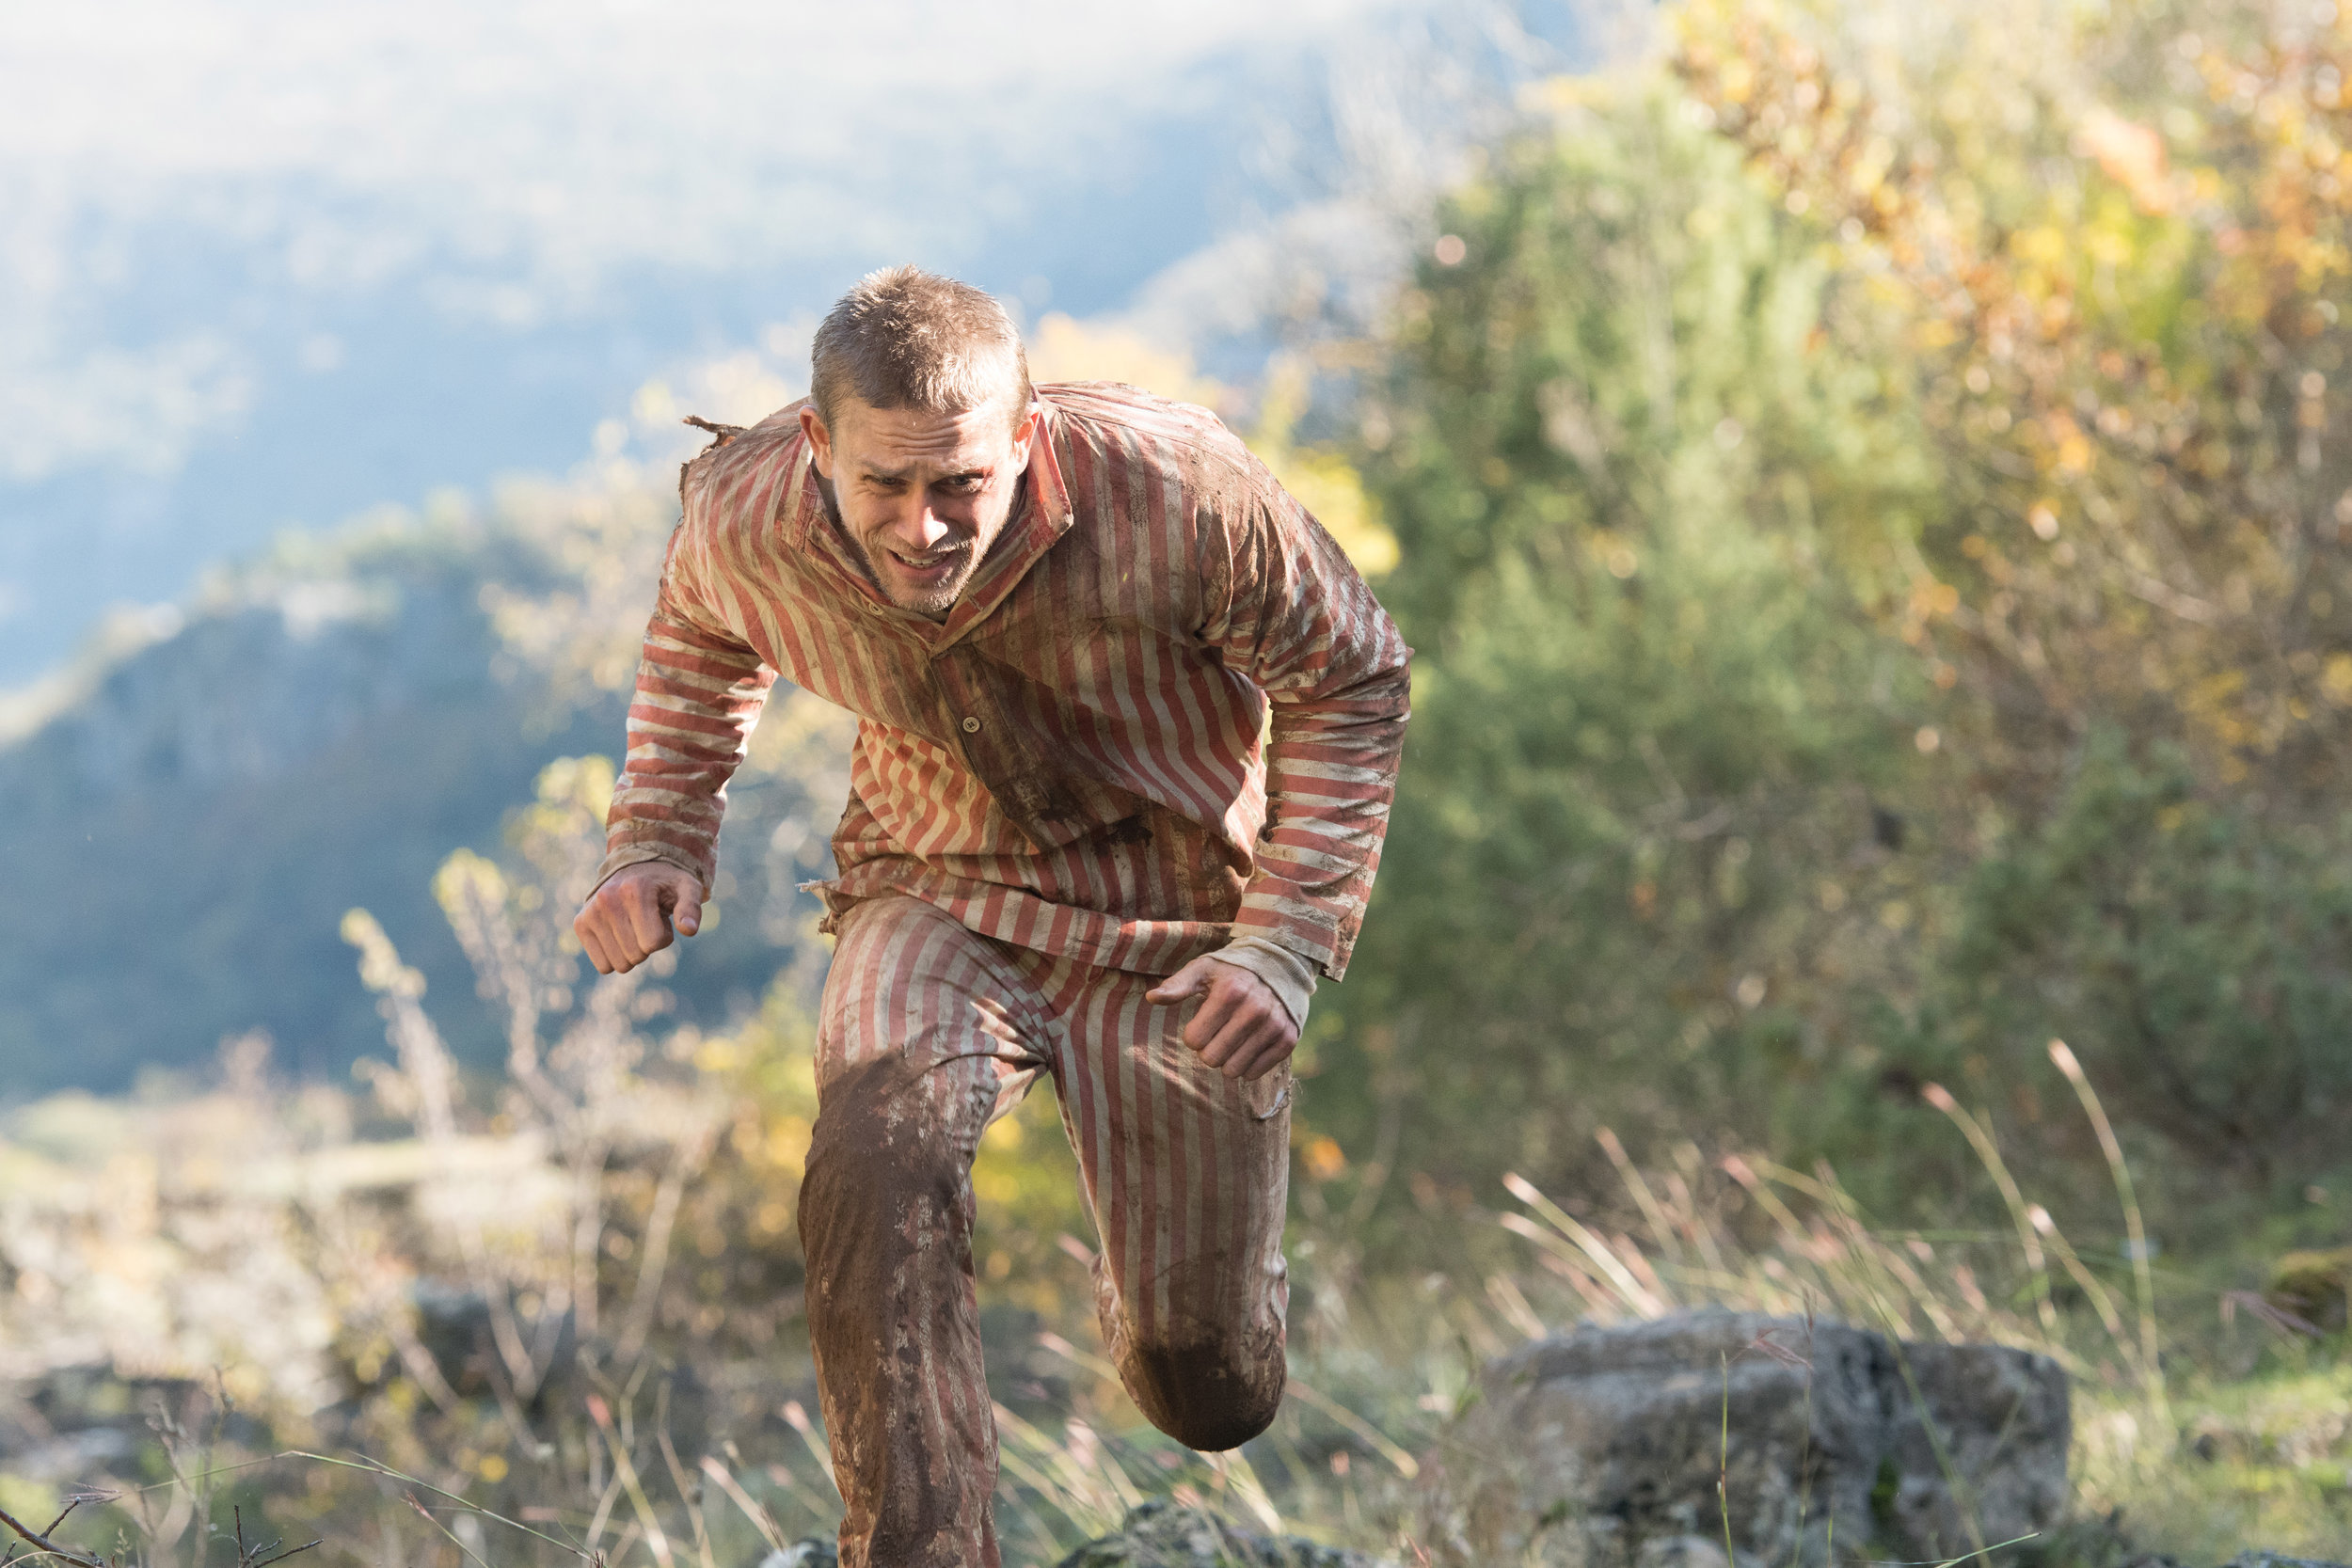 """Charlie Hunnam plays Henri Charrière, a Paris thief whose harrowing survival story in a French penal colony is told in """"Papillon."""" (Photo by Jose Haro, courtesy Bleecker Street Films)"""